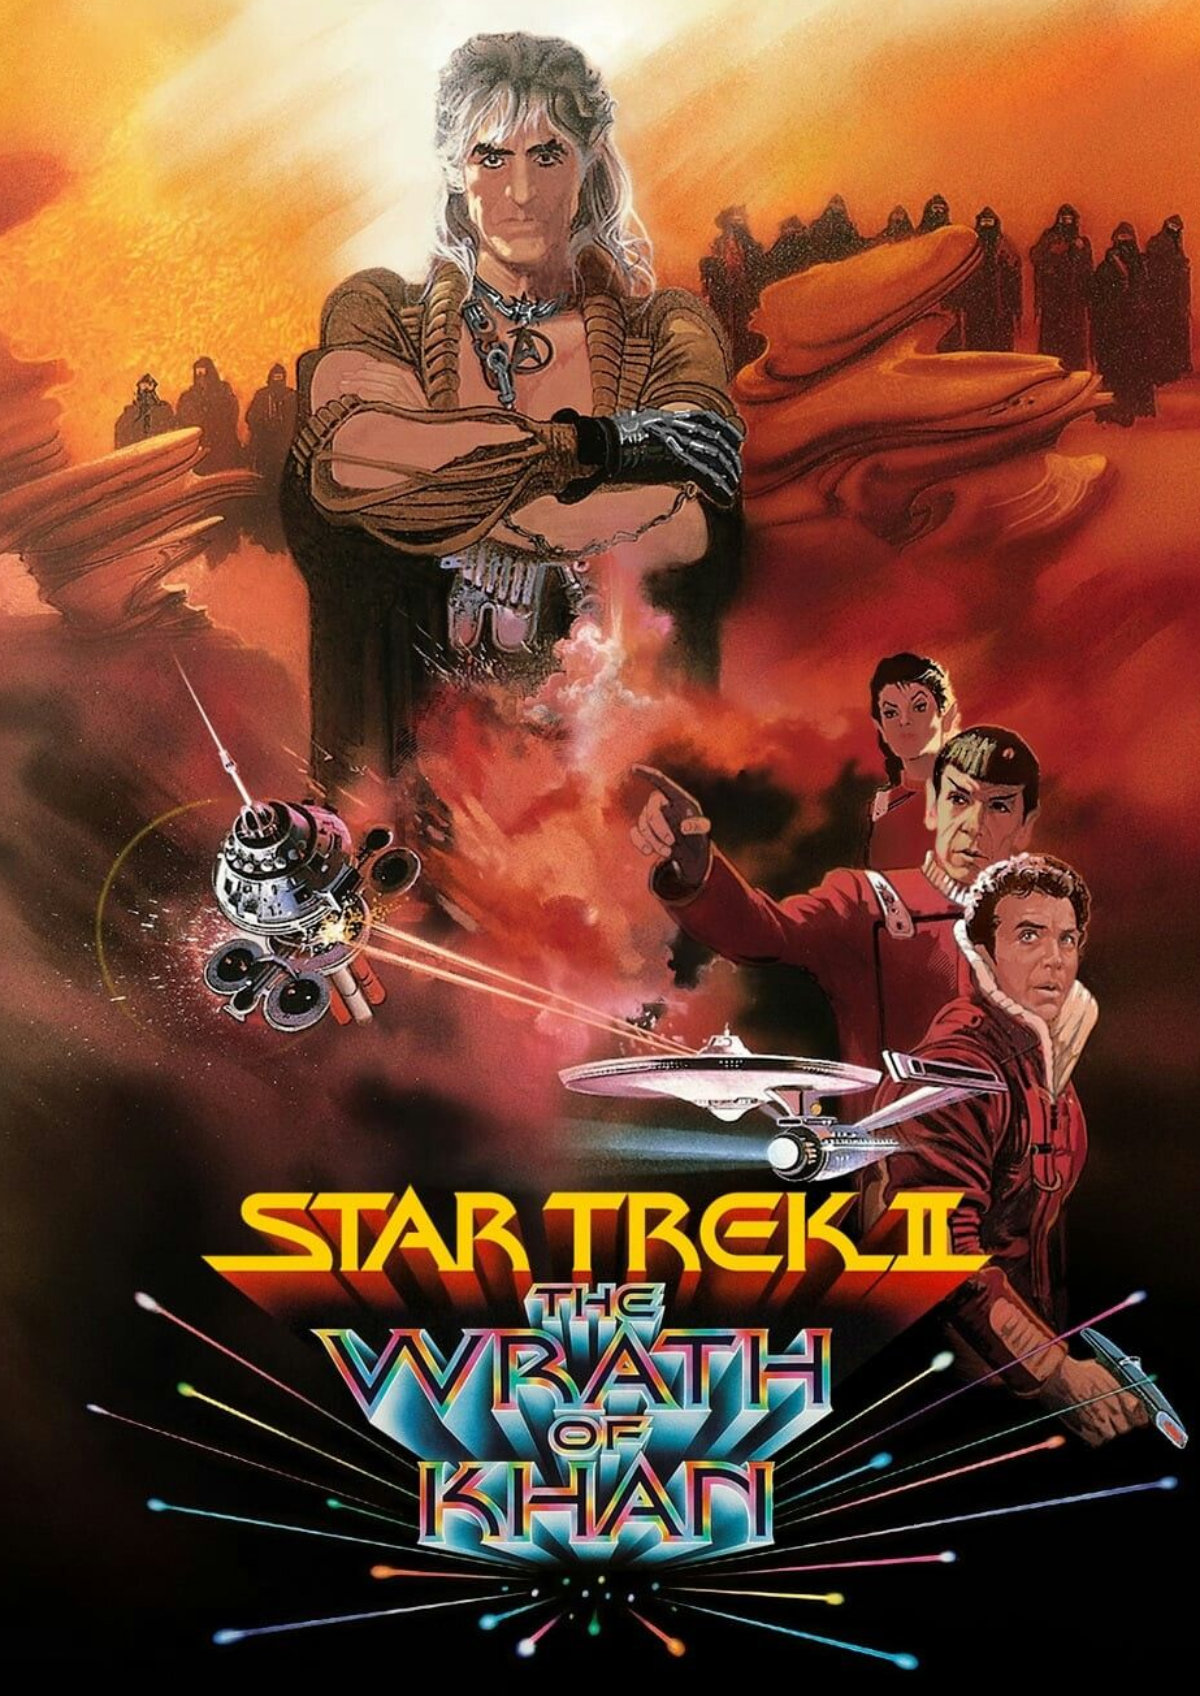 'Star Trek II: The Wrath Of Khan' movie poster